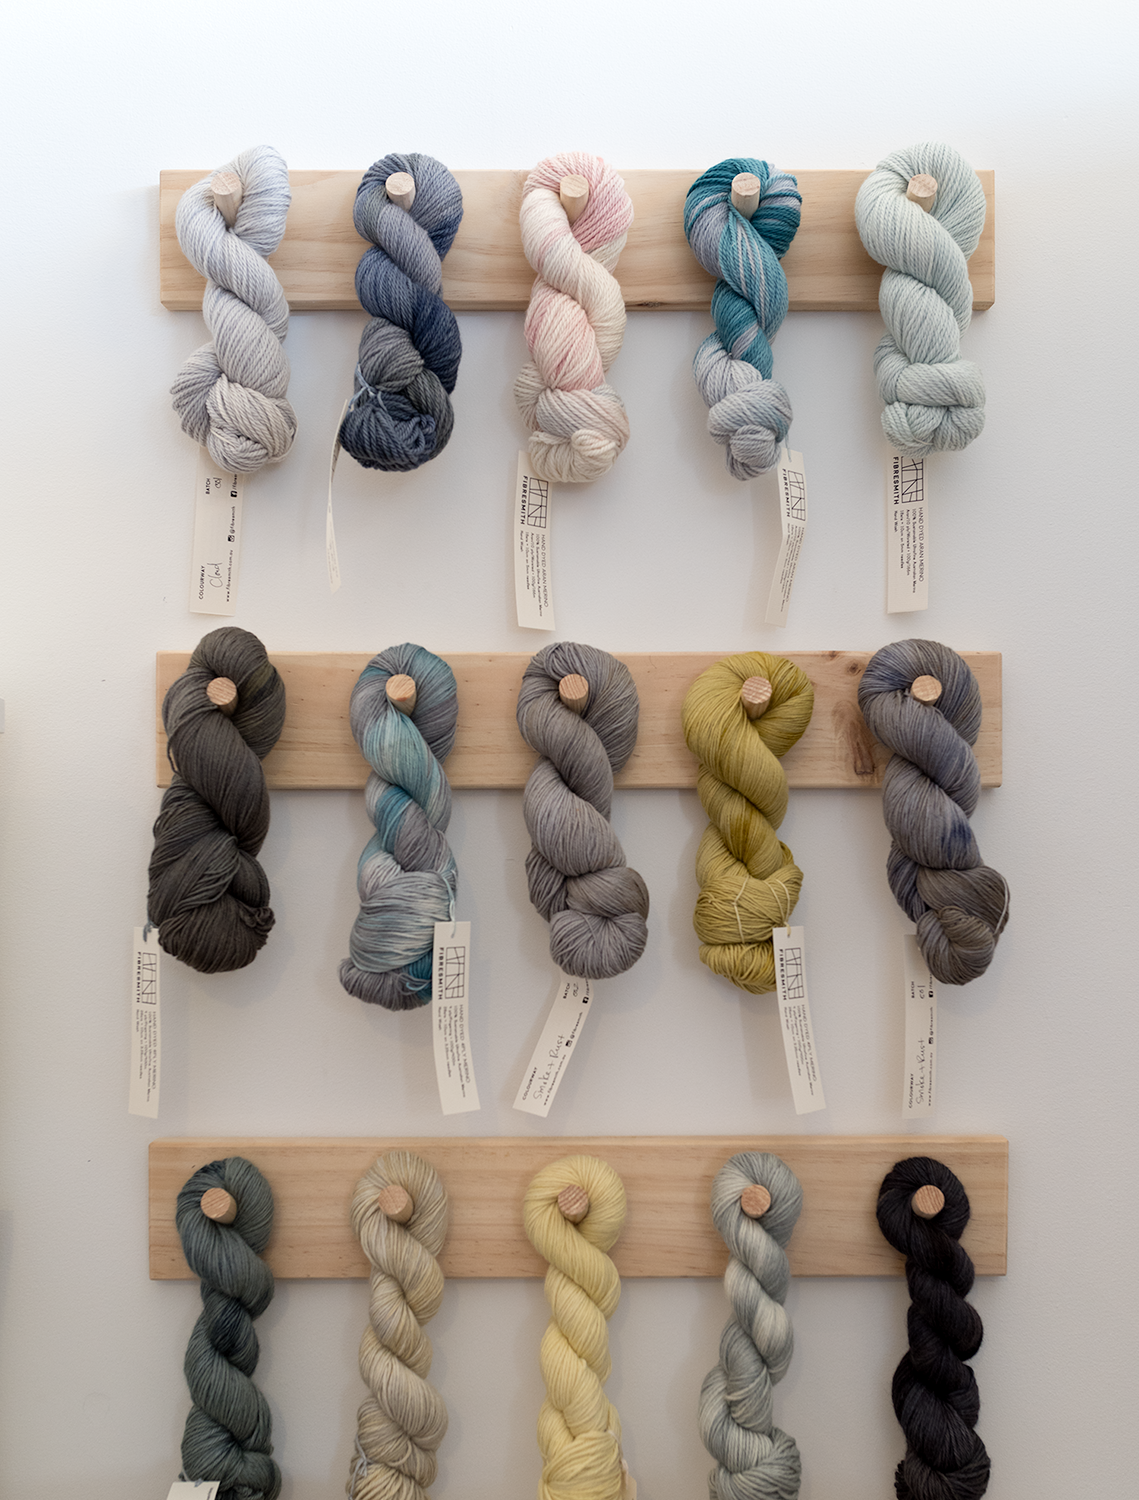 Skeins of Leslie's handdyed Fibresmith yarn.Photo by Susan Fitzgerald.